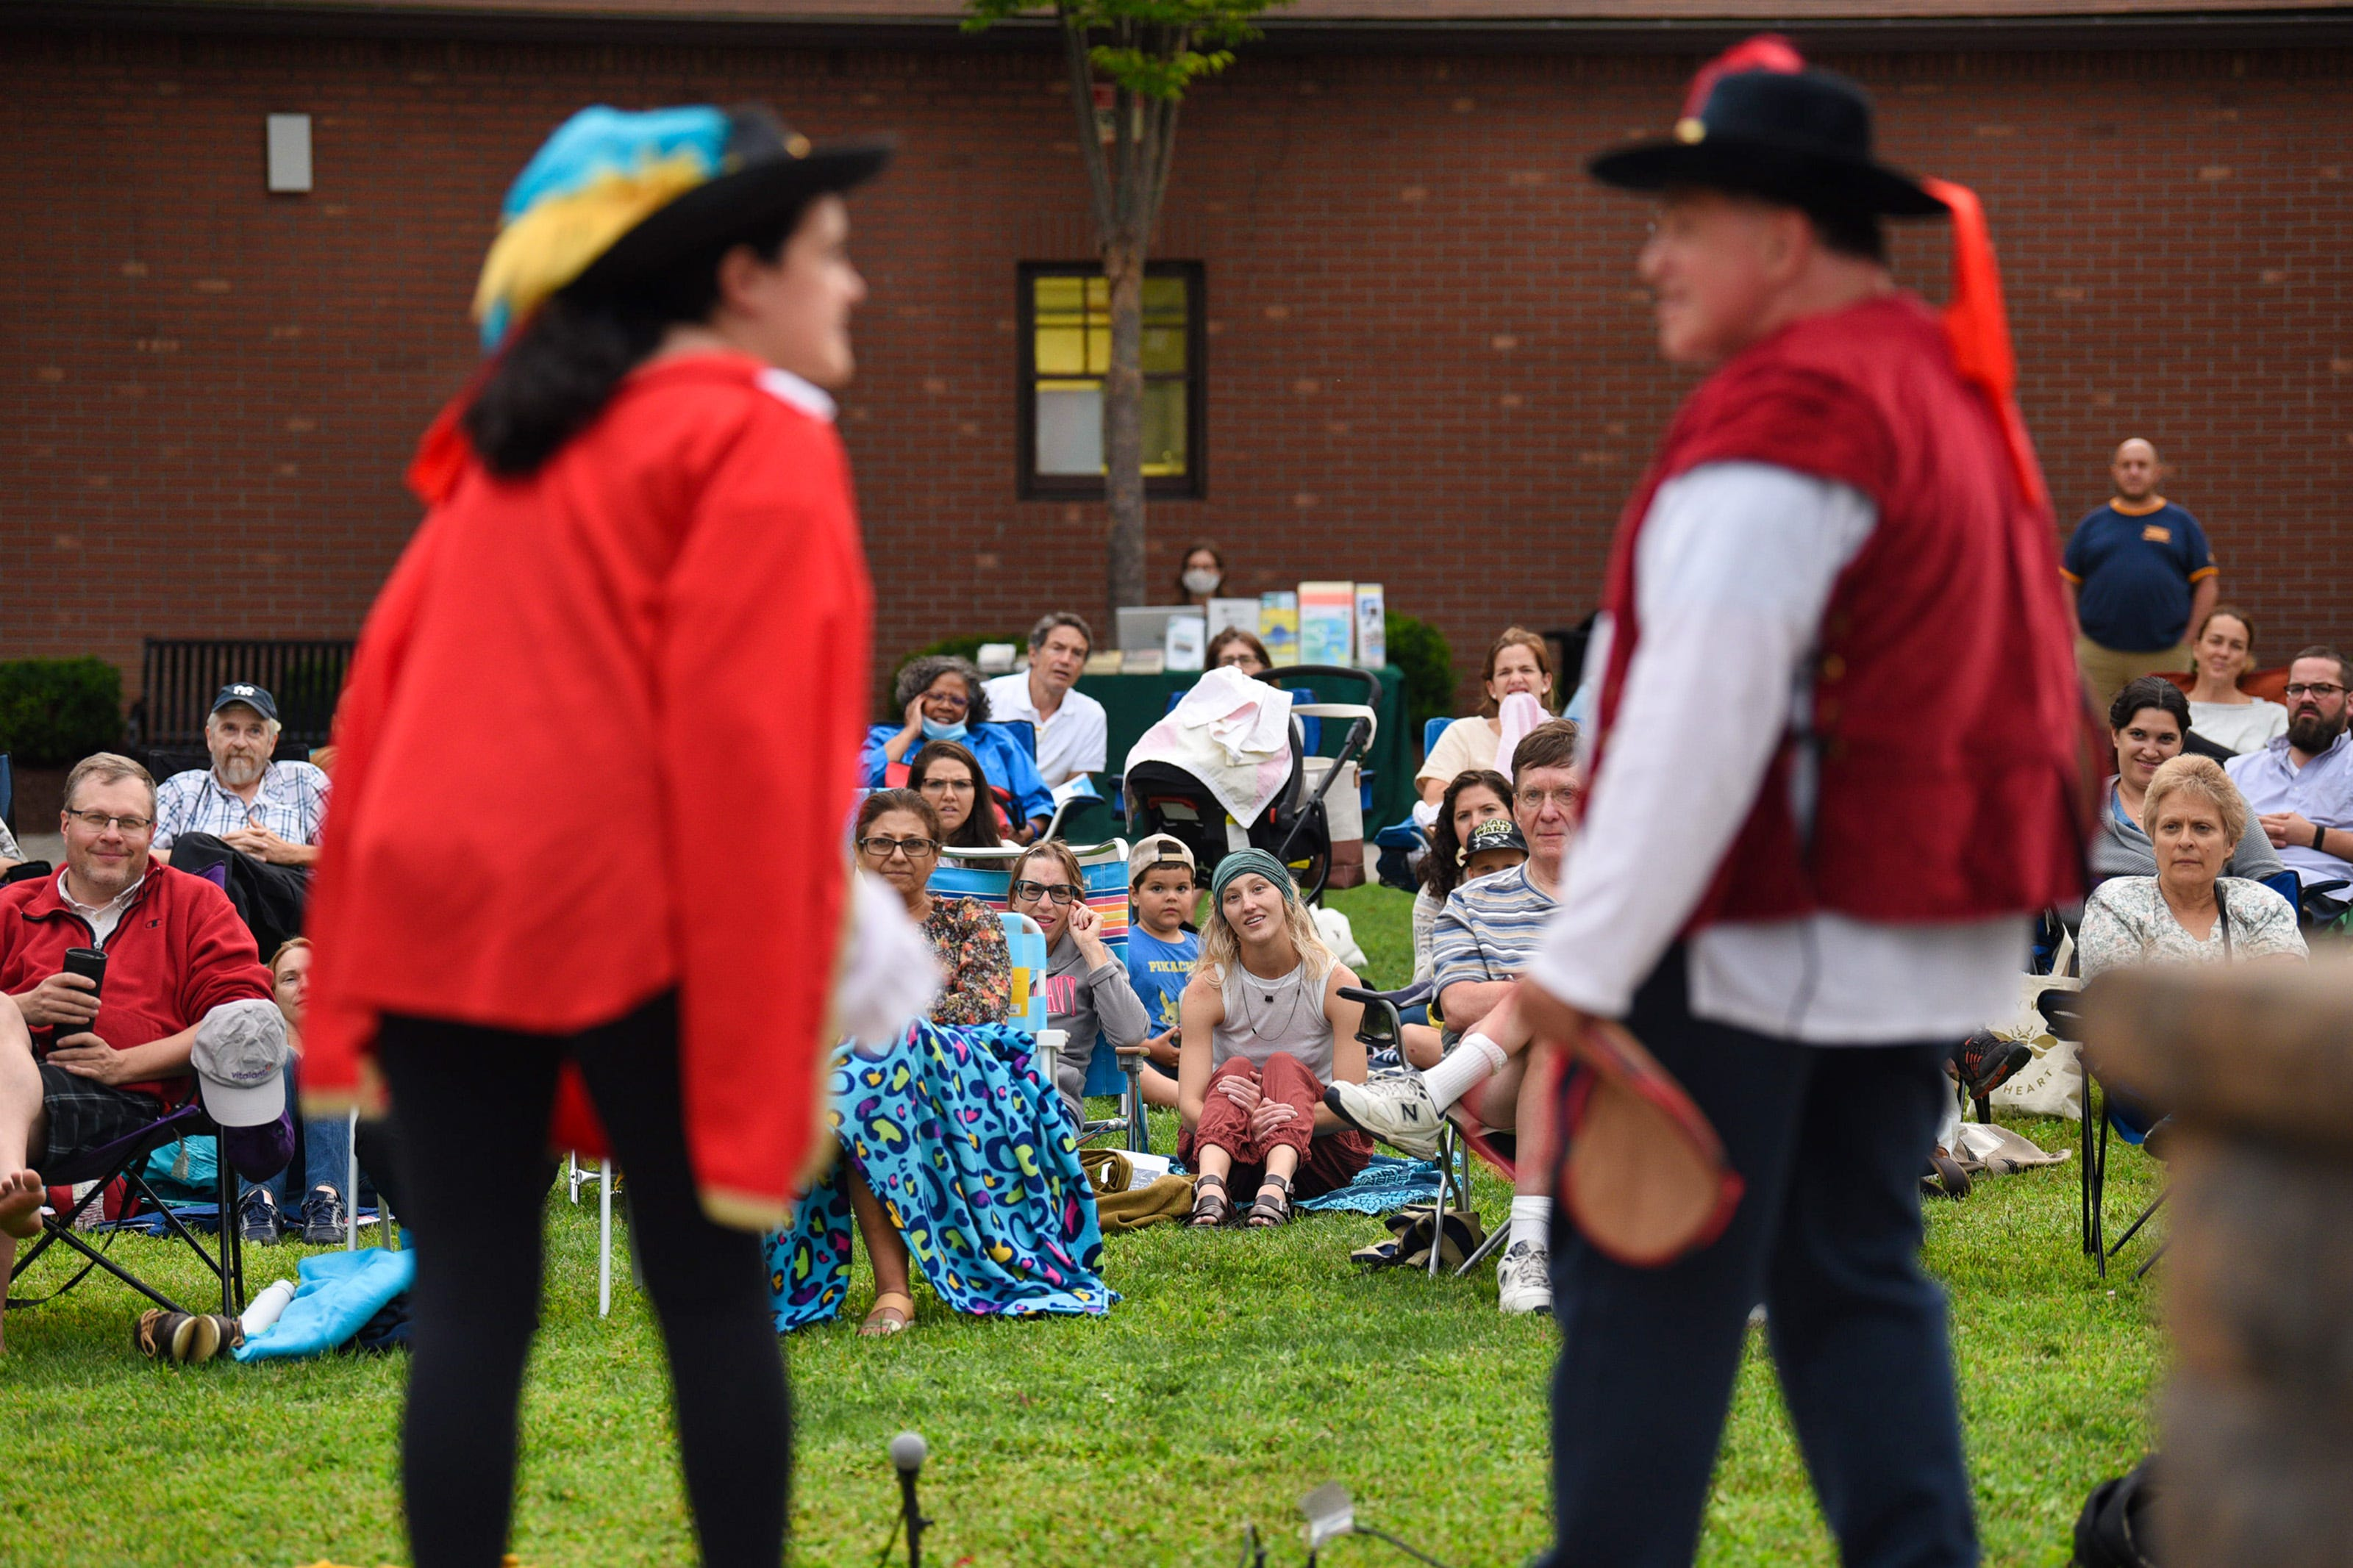 """The audience takes in the Hudson Shakespeare Company's performance of """"Twelfth Night"""" at Atlantic Street Park just outside of Hackensack Performing Arts Center in Hackensack on 08/04/21.  The actors are Ashley Robyn Patten, left, and Jon Ciccarelli, right."""